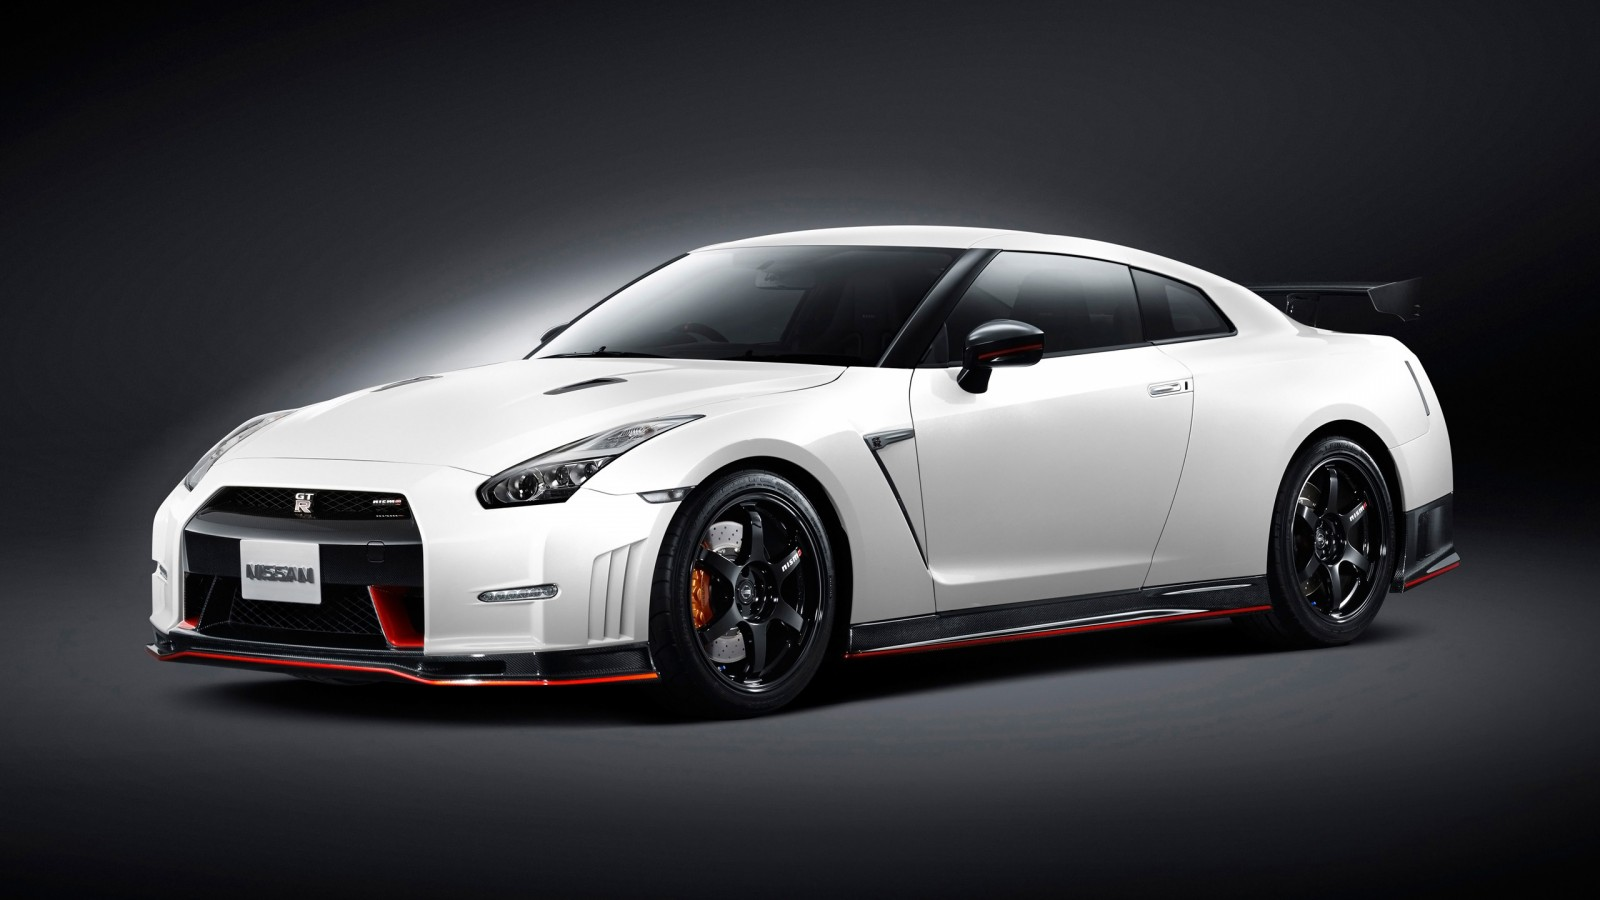 2015 nissan gt r nismo 3 wallpaper hd car wallpapers id 3986. Black Bedroom Furniture Sets. Home Design Ideas